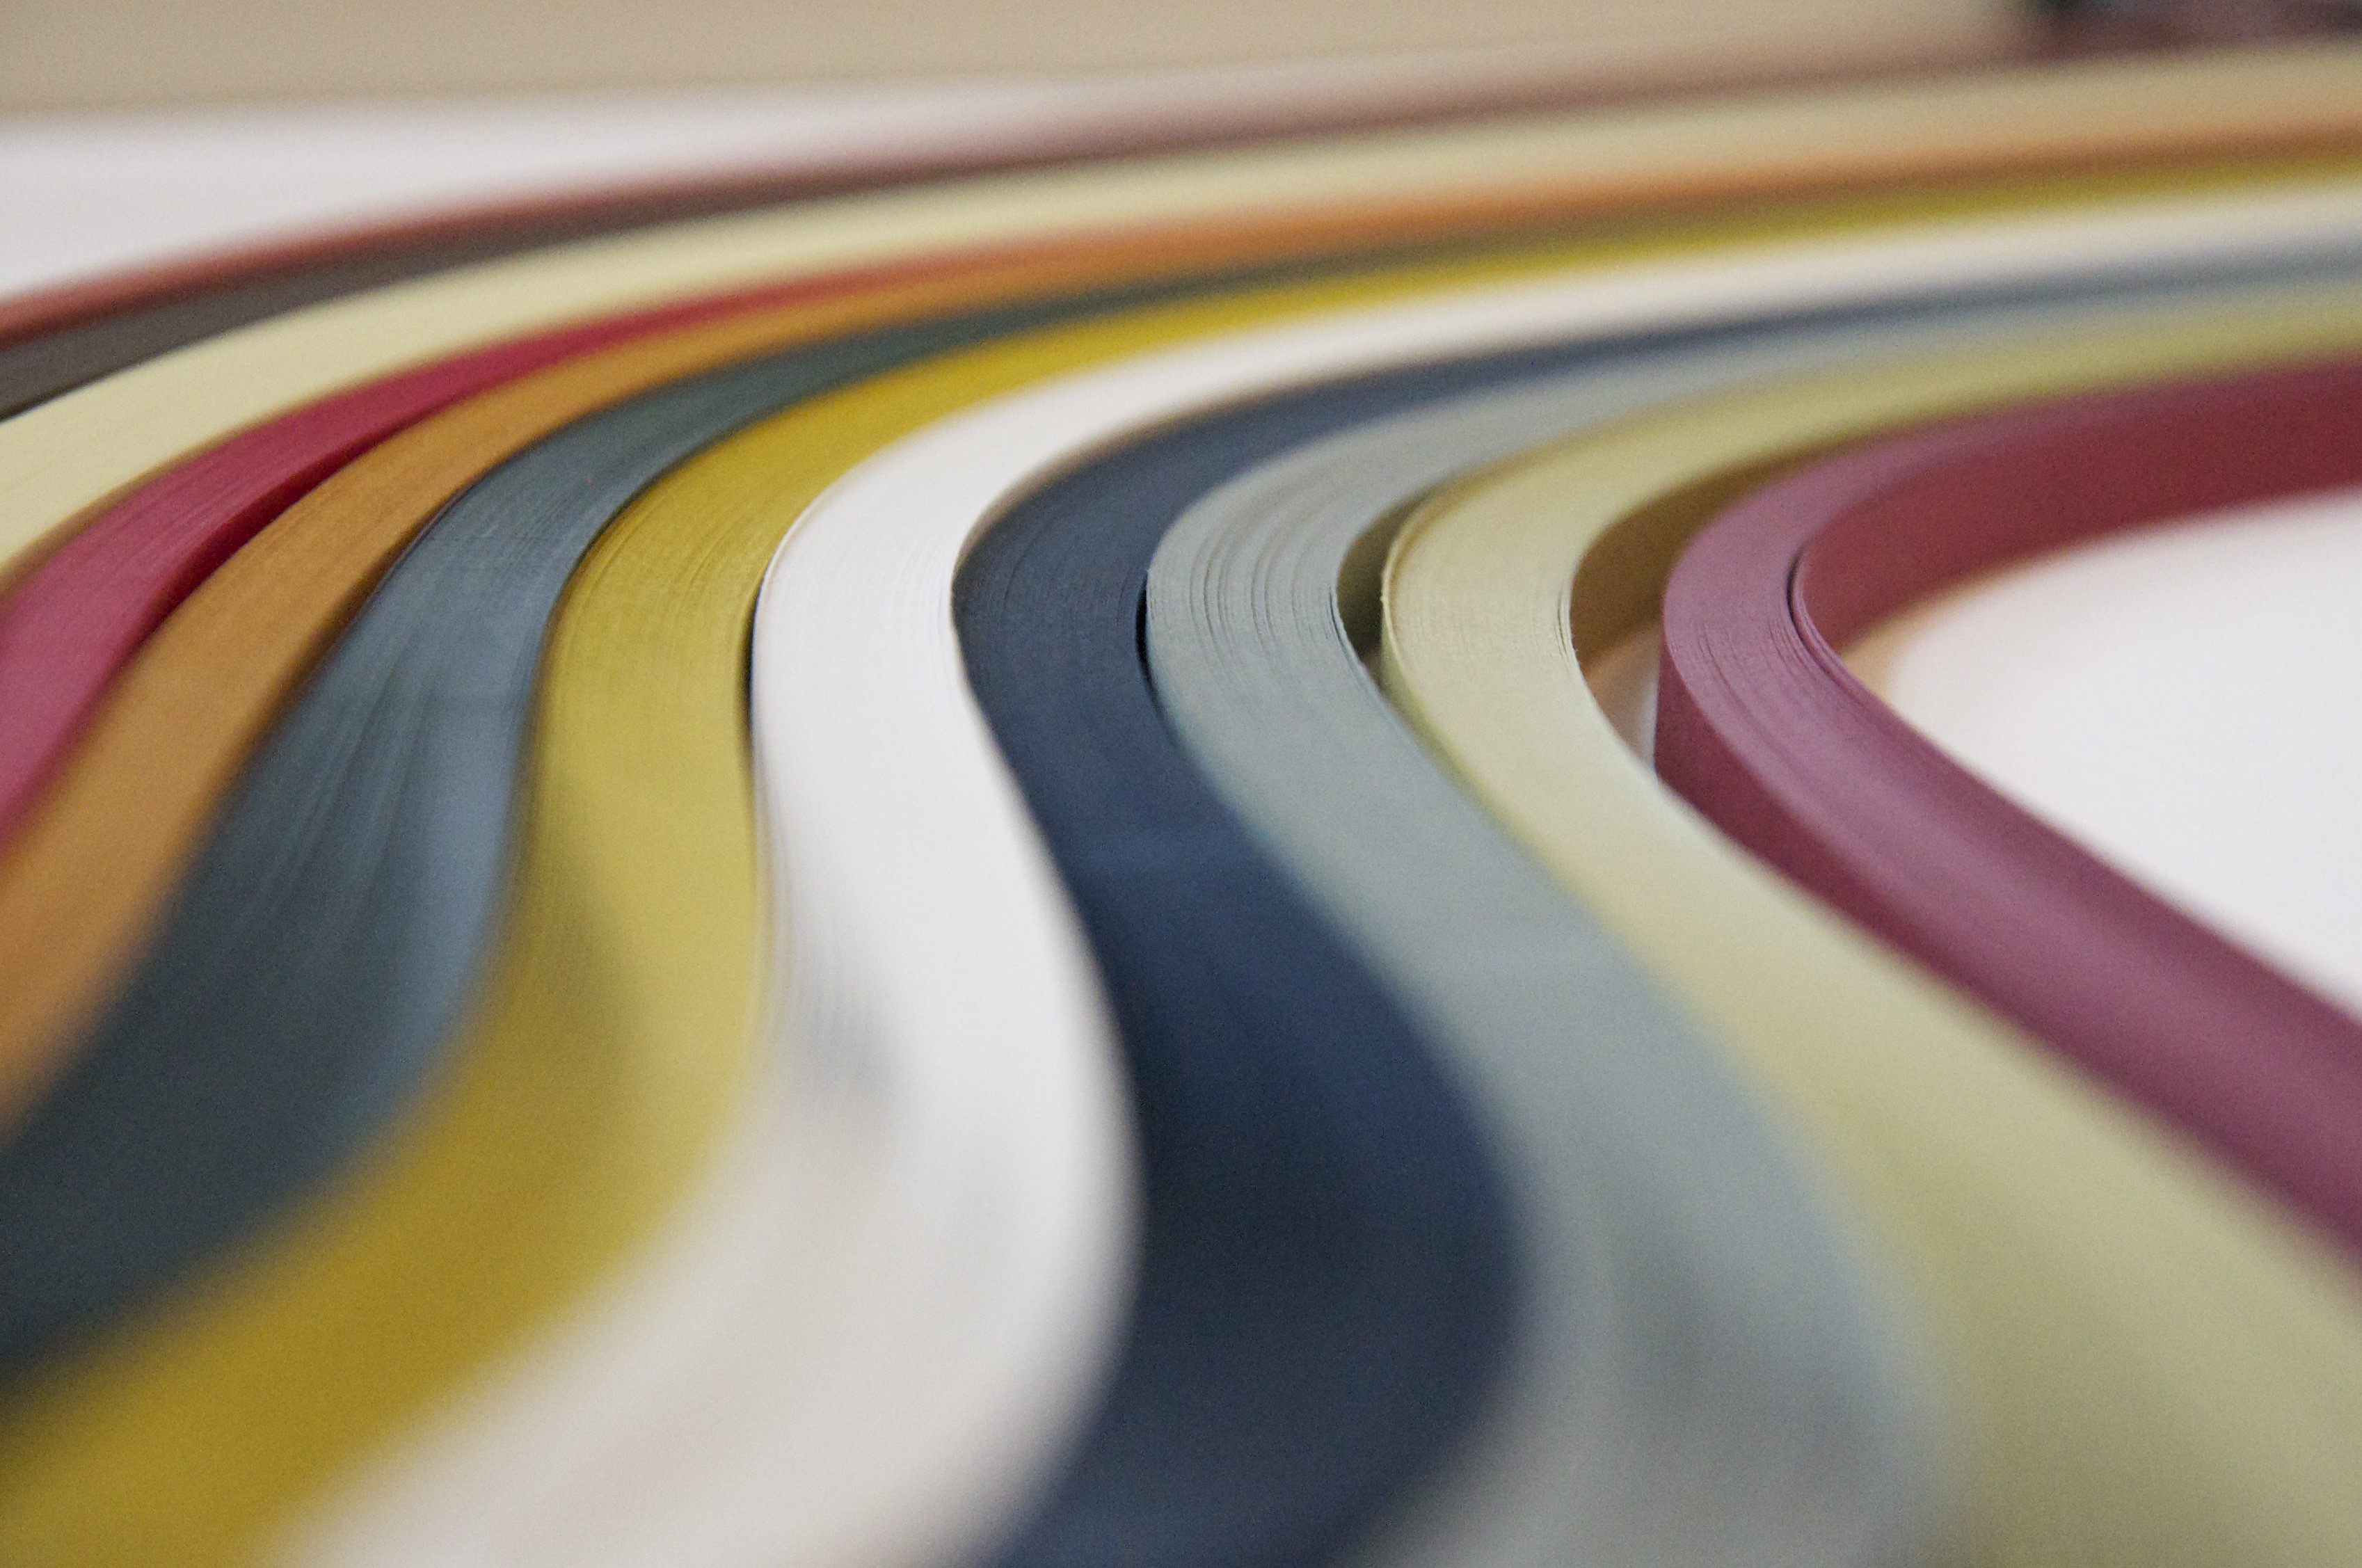 Image of multiple colored quilling paper strips